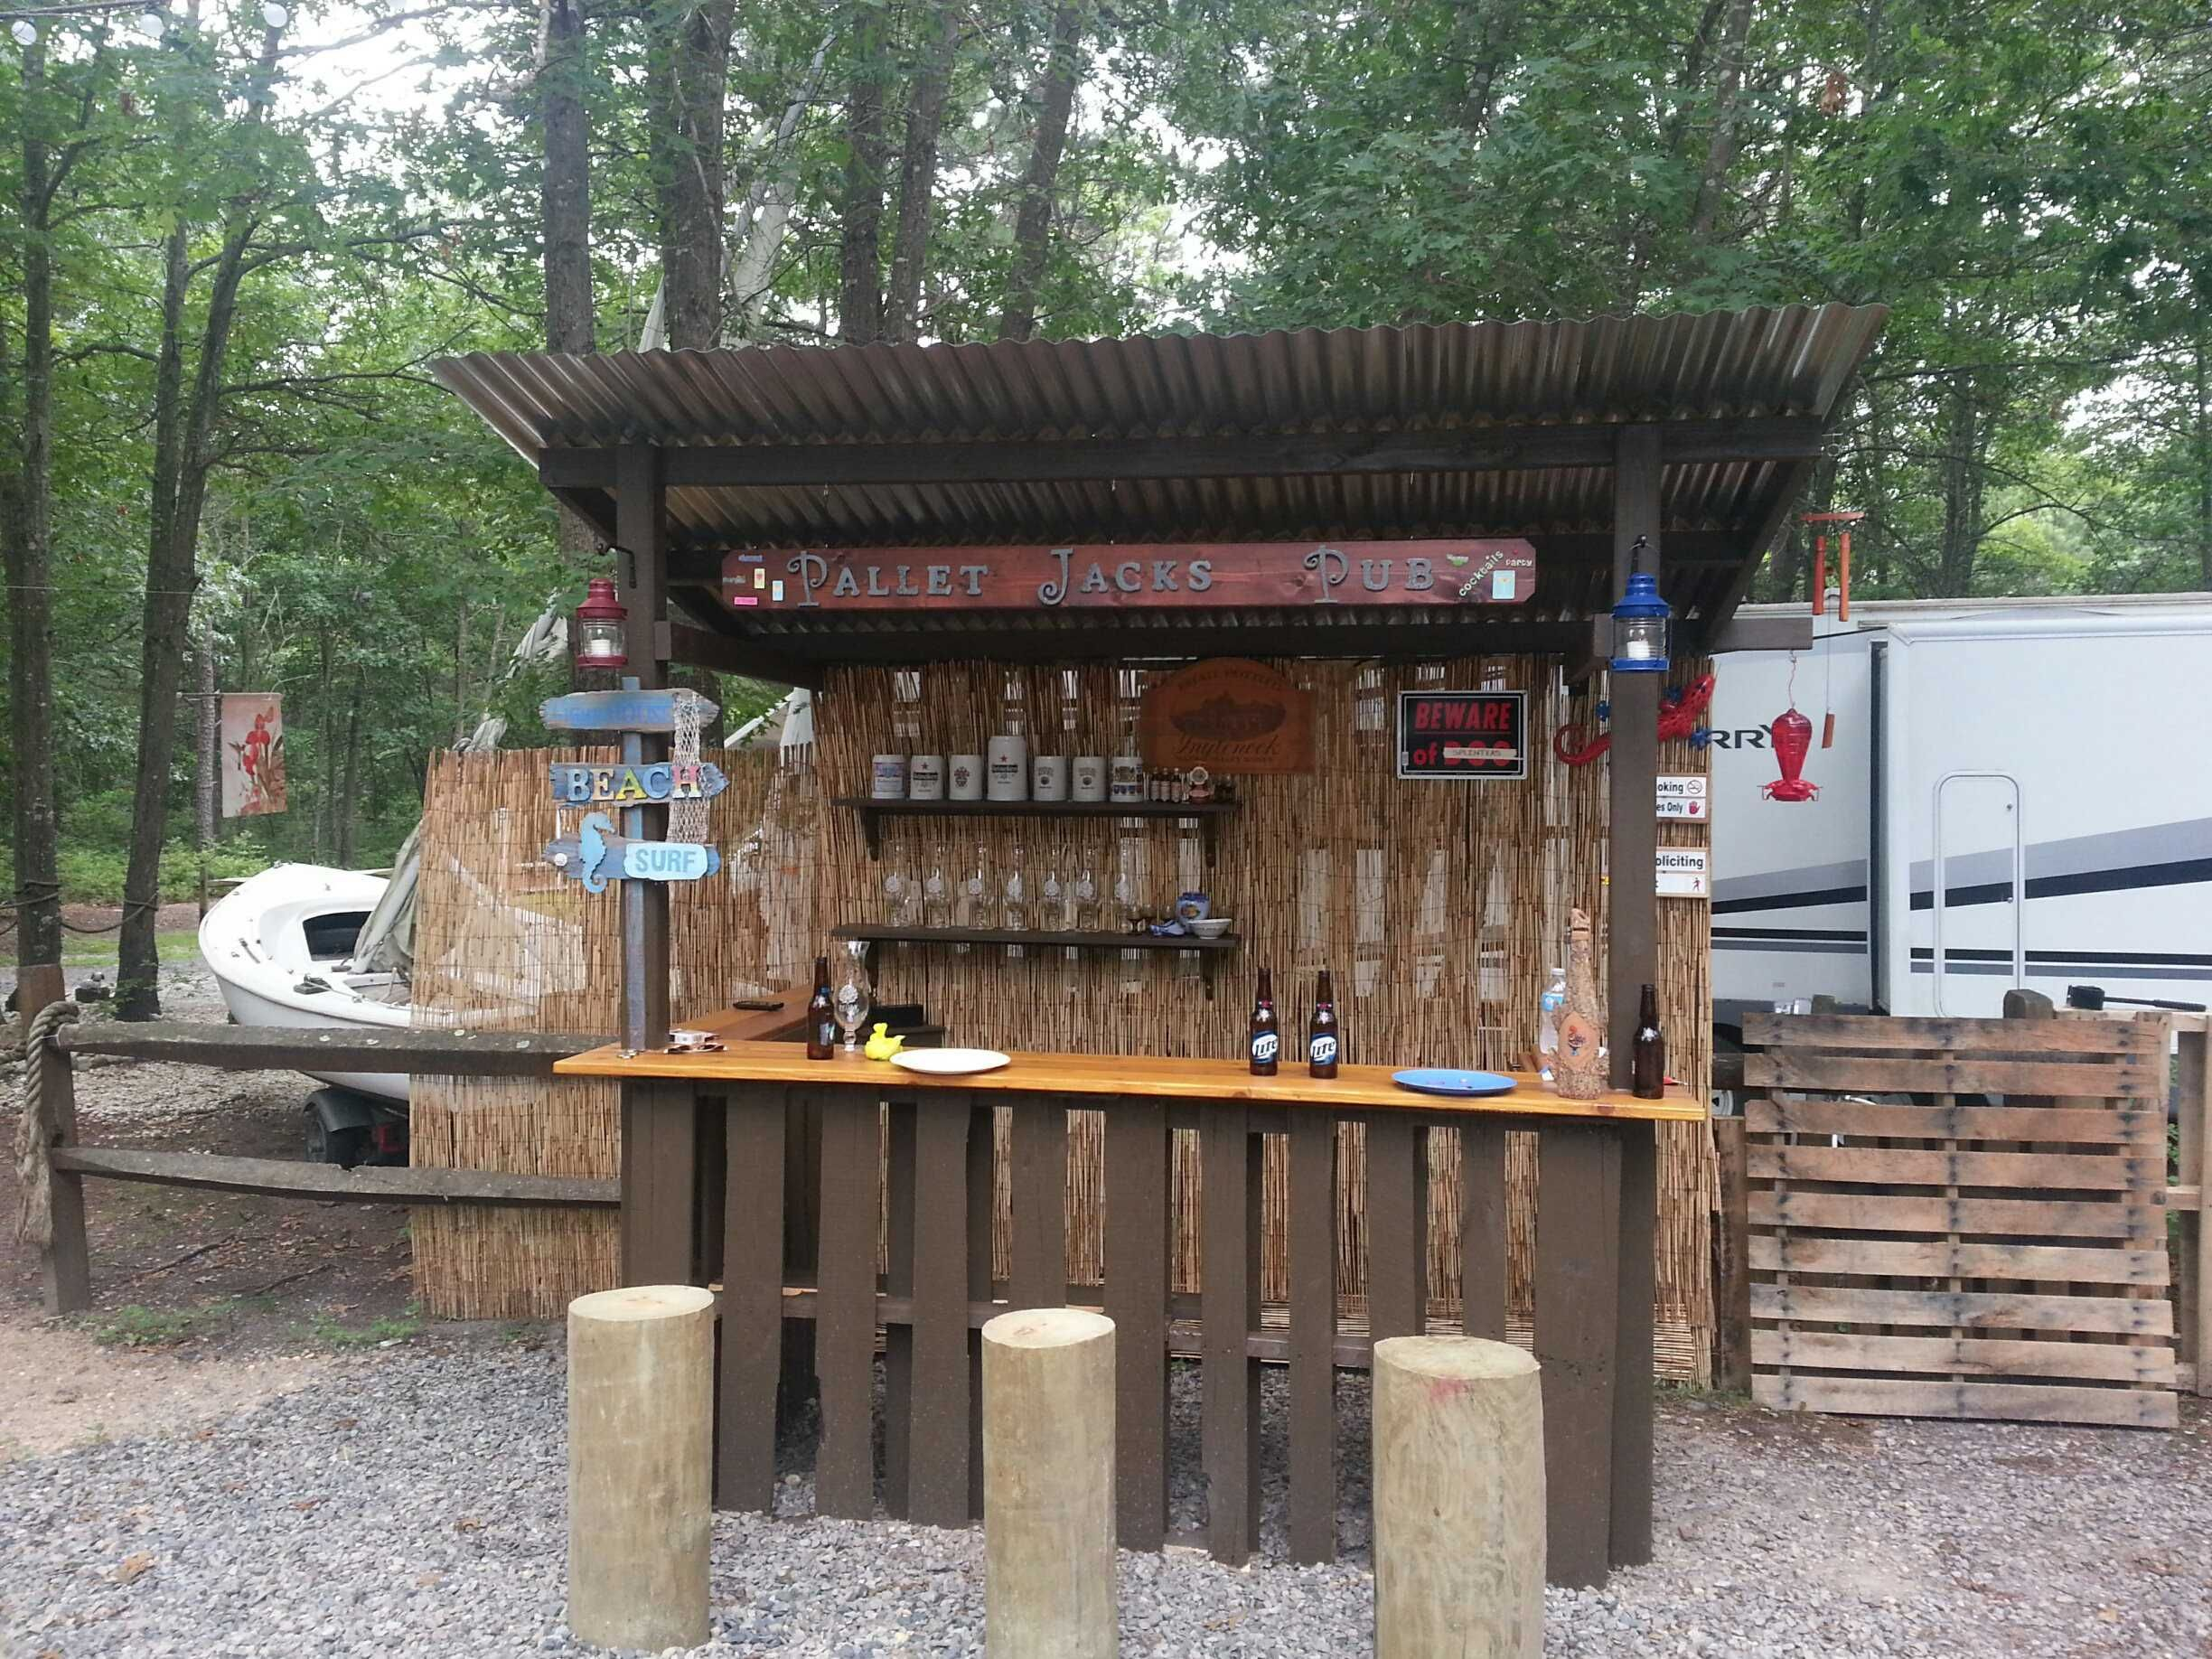 Tiki Bar On Campsite I Have On The Jersey Shore Near Long Beach Island. Took